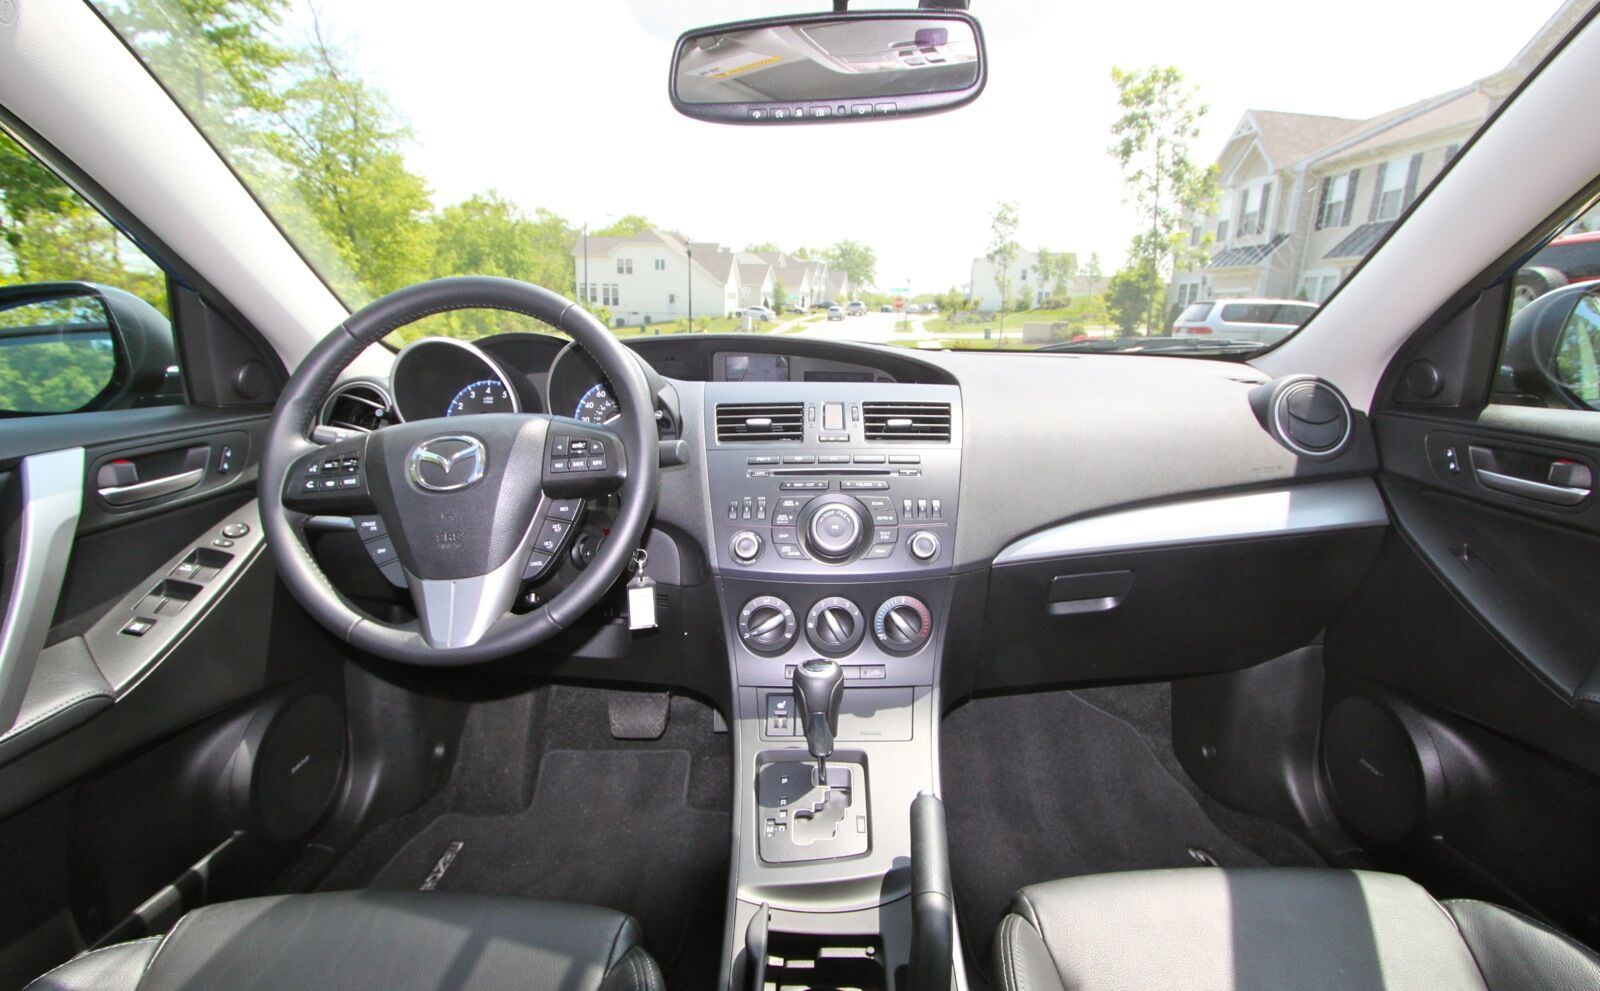 2012 Mazda3 Interior - Used Cars Portsmouth, NH